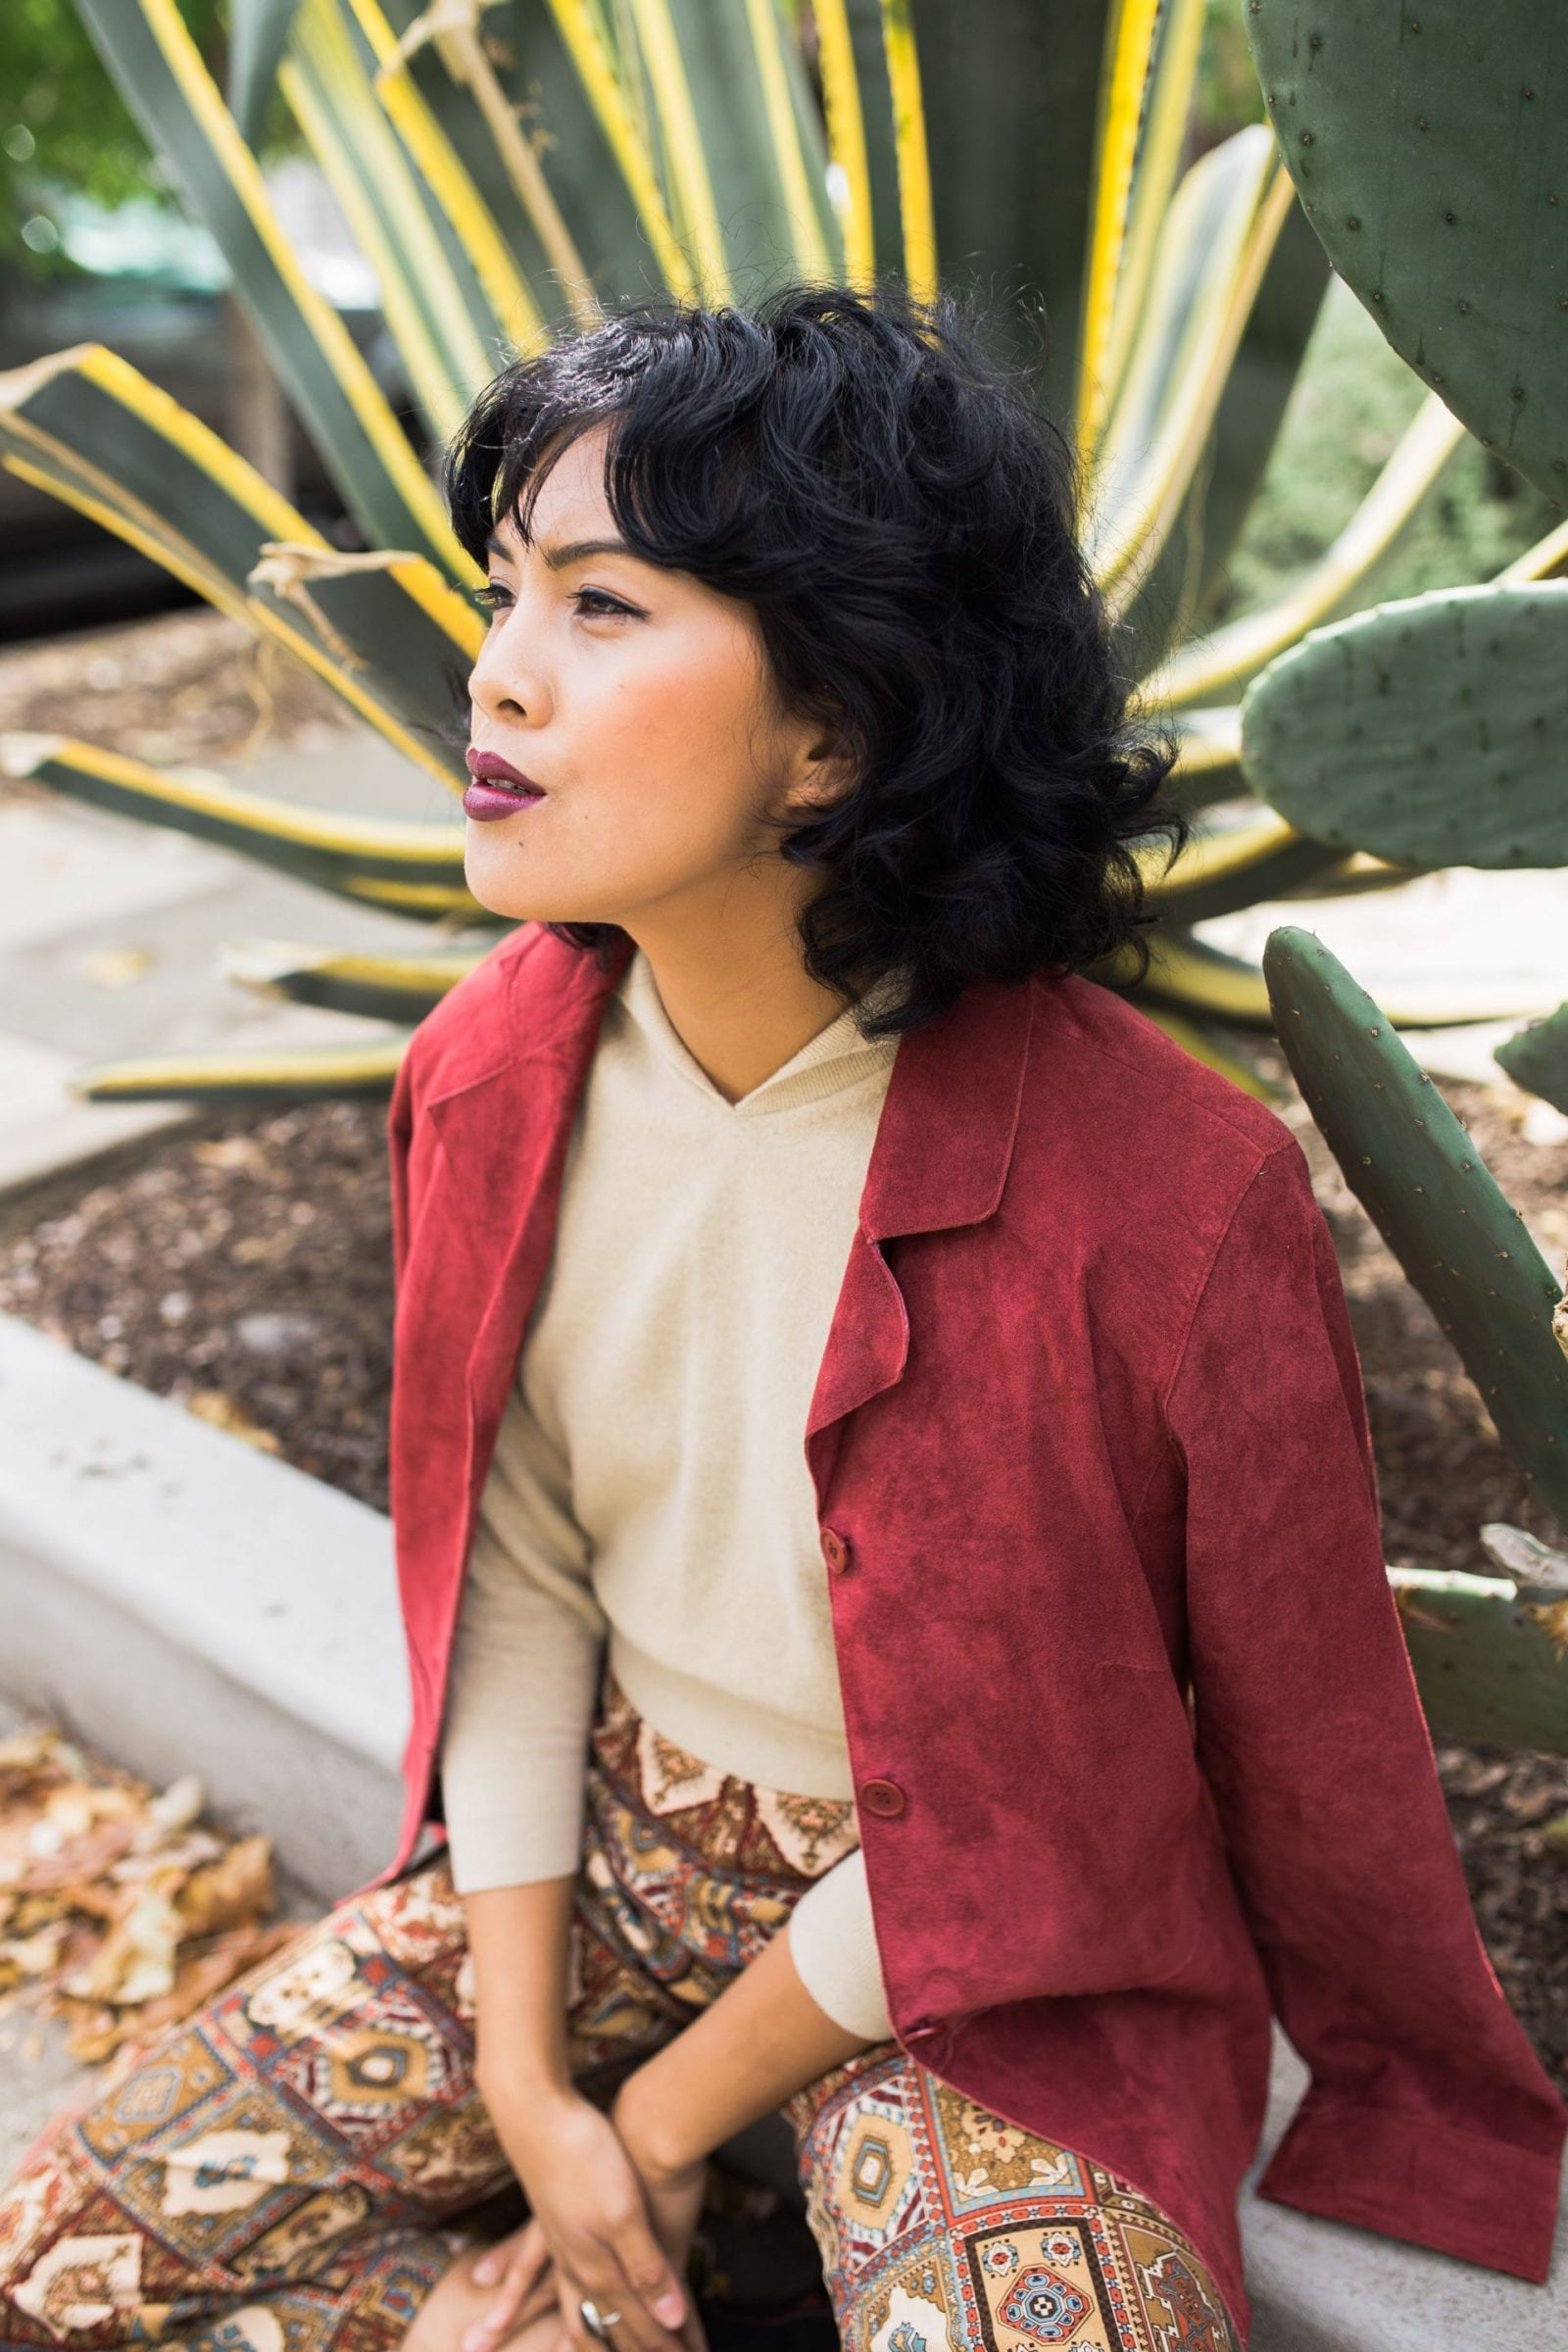 Shop Flore Fall Lookbook Sacramento Fashion Vintage | SarahMichiko.com